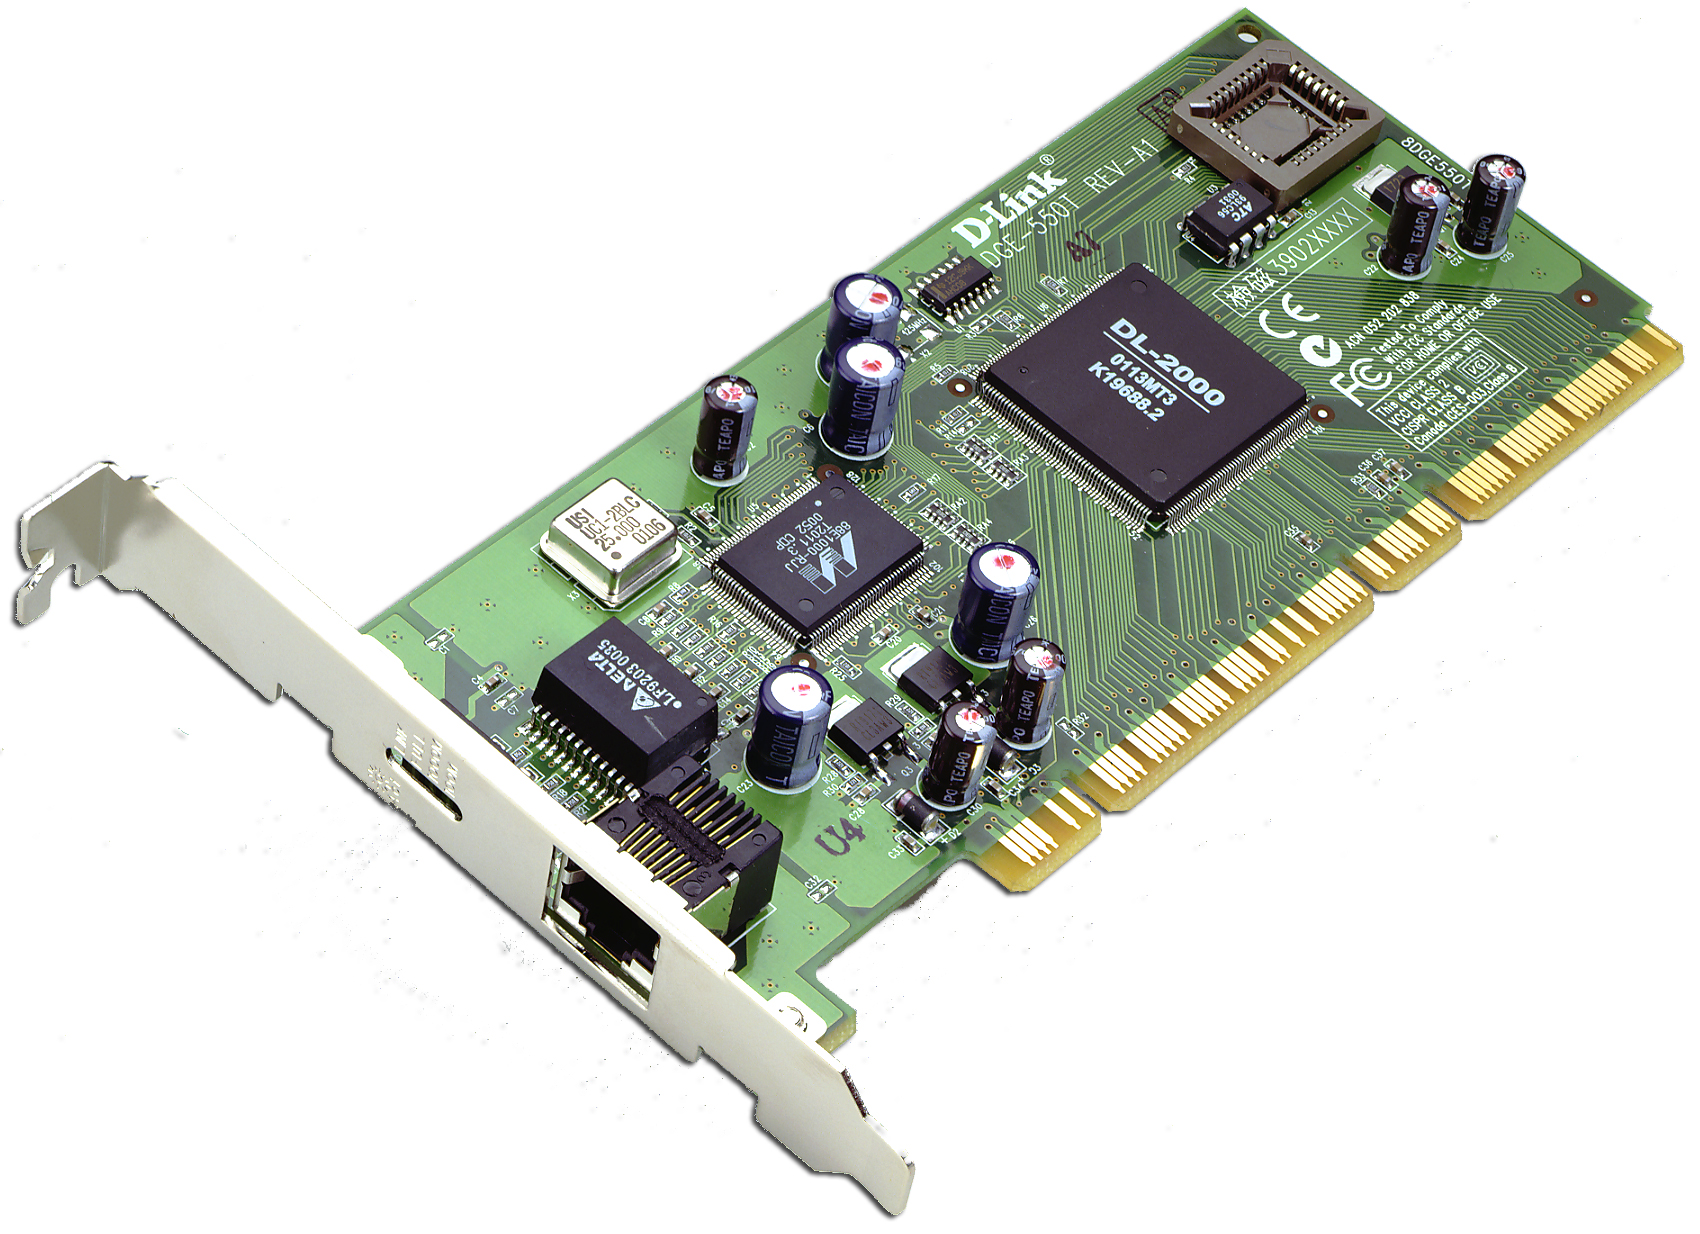 Drivers and utilities for a network cards D-Link